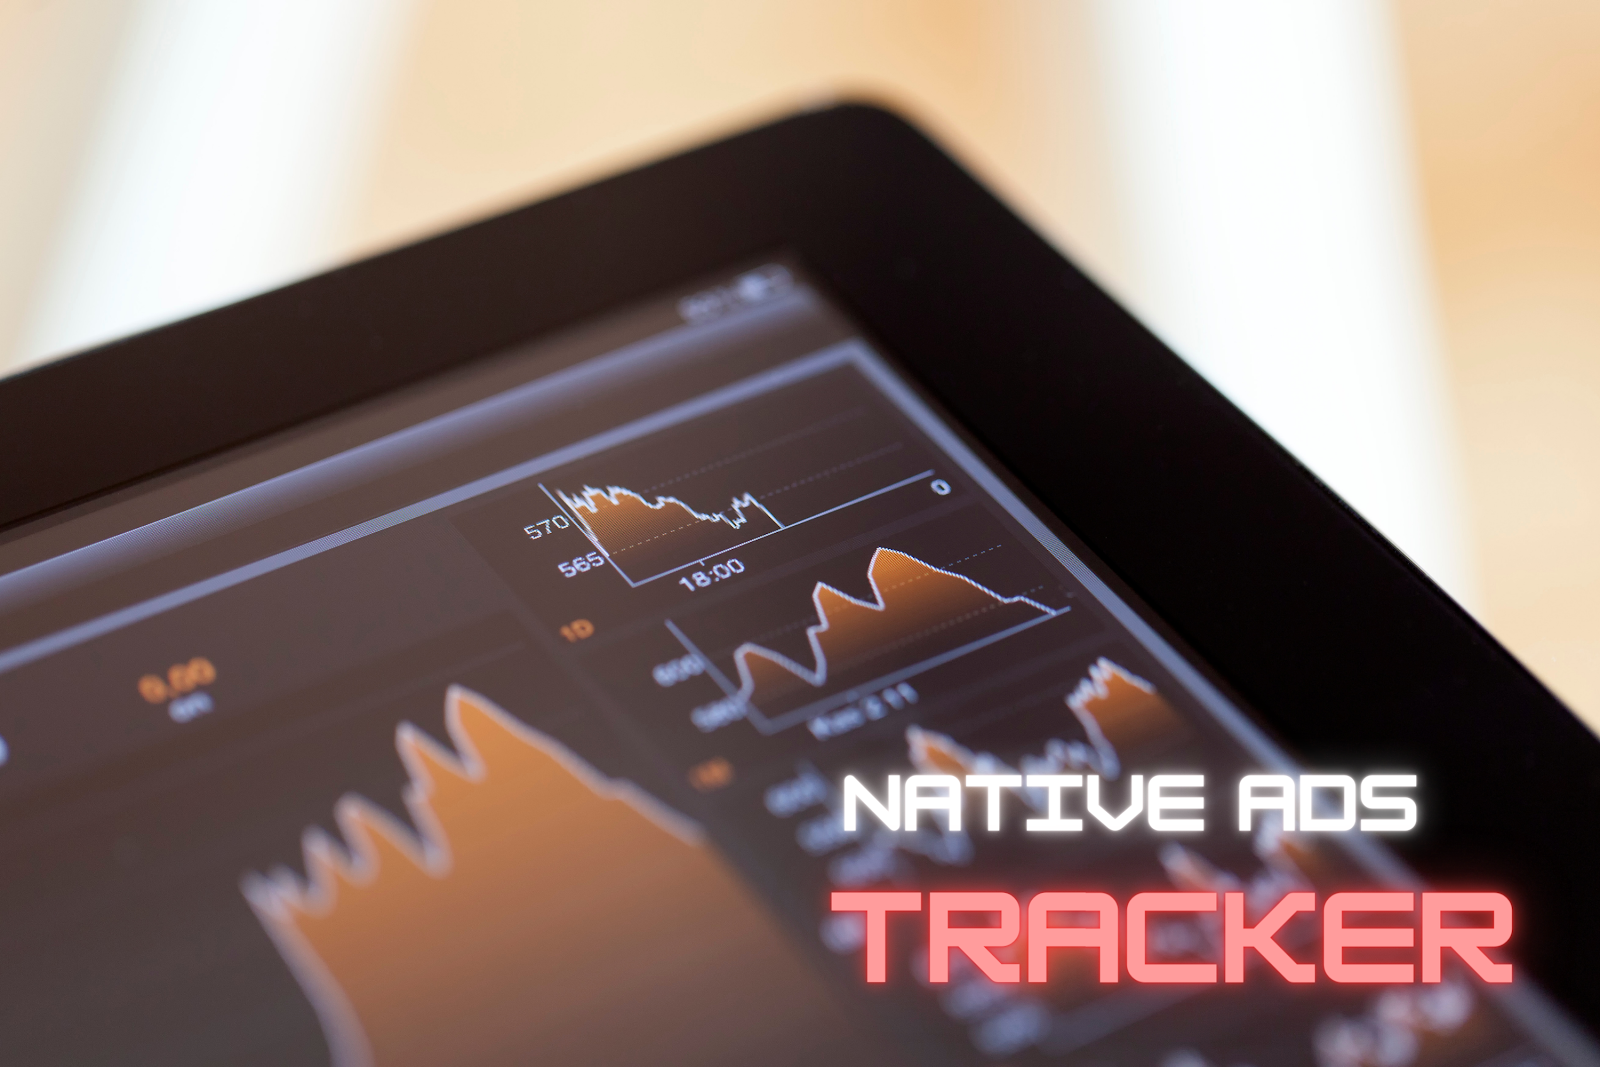 The Dirty Dozen: Top 12 Advertising Trackers for Native Ads